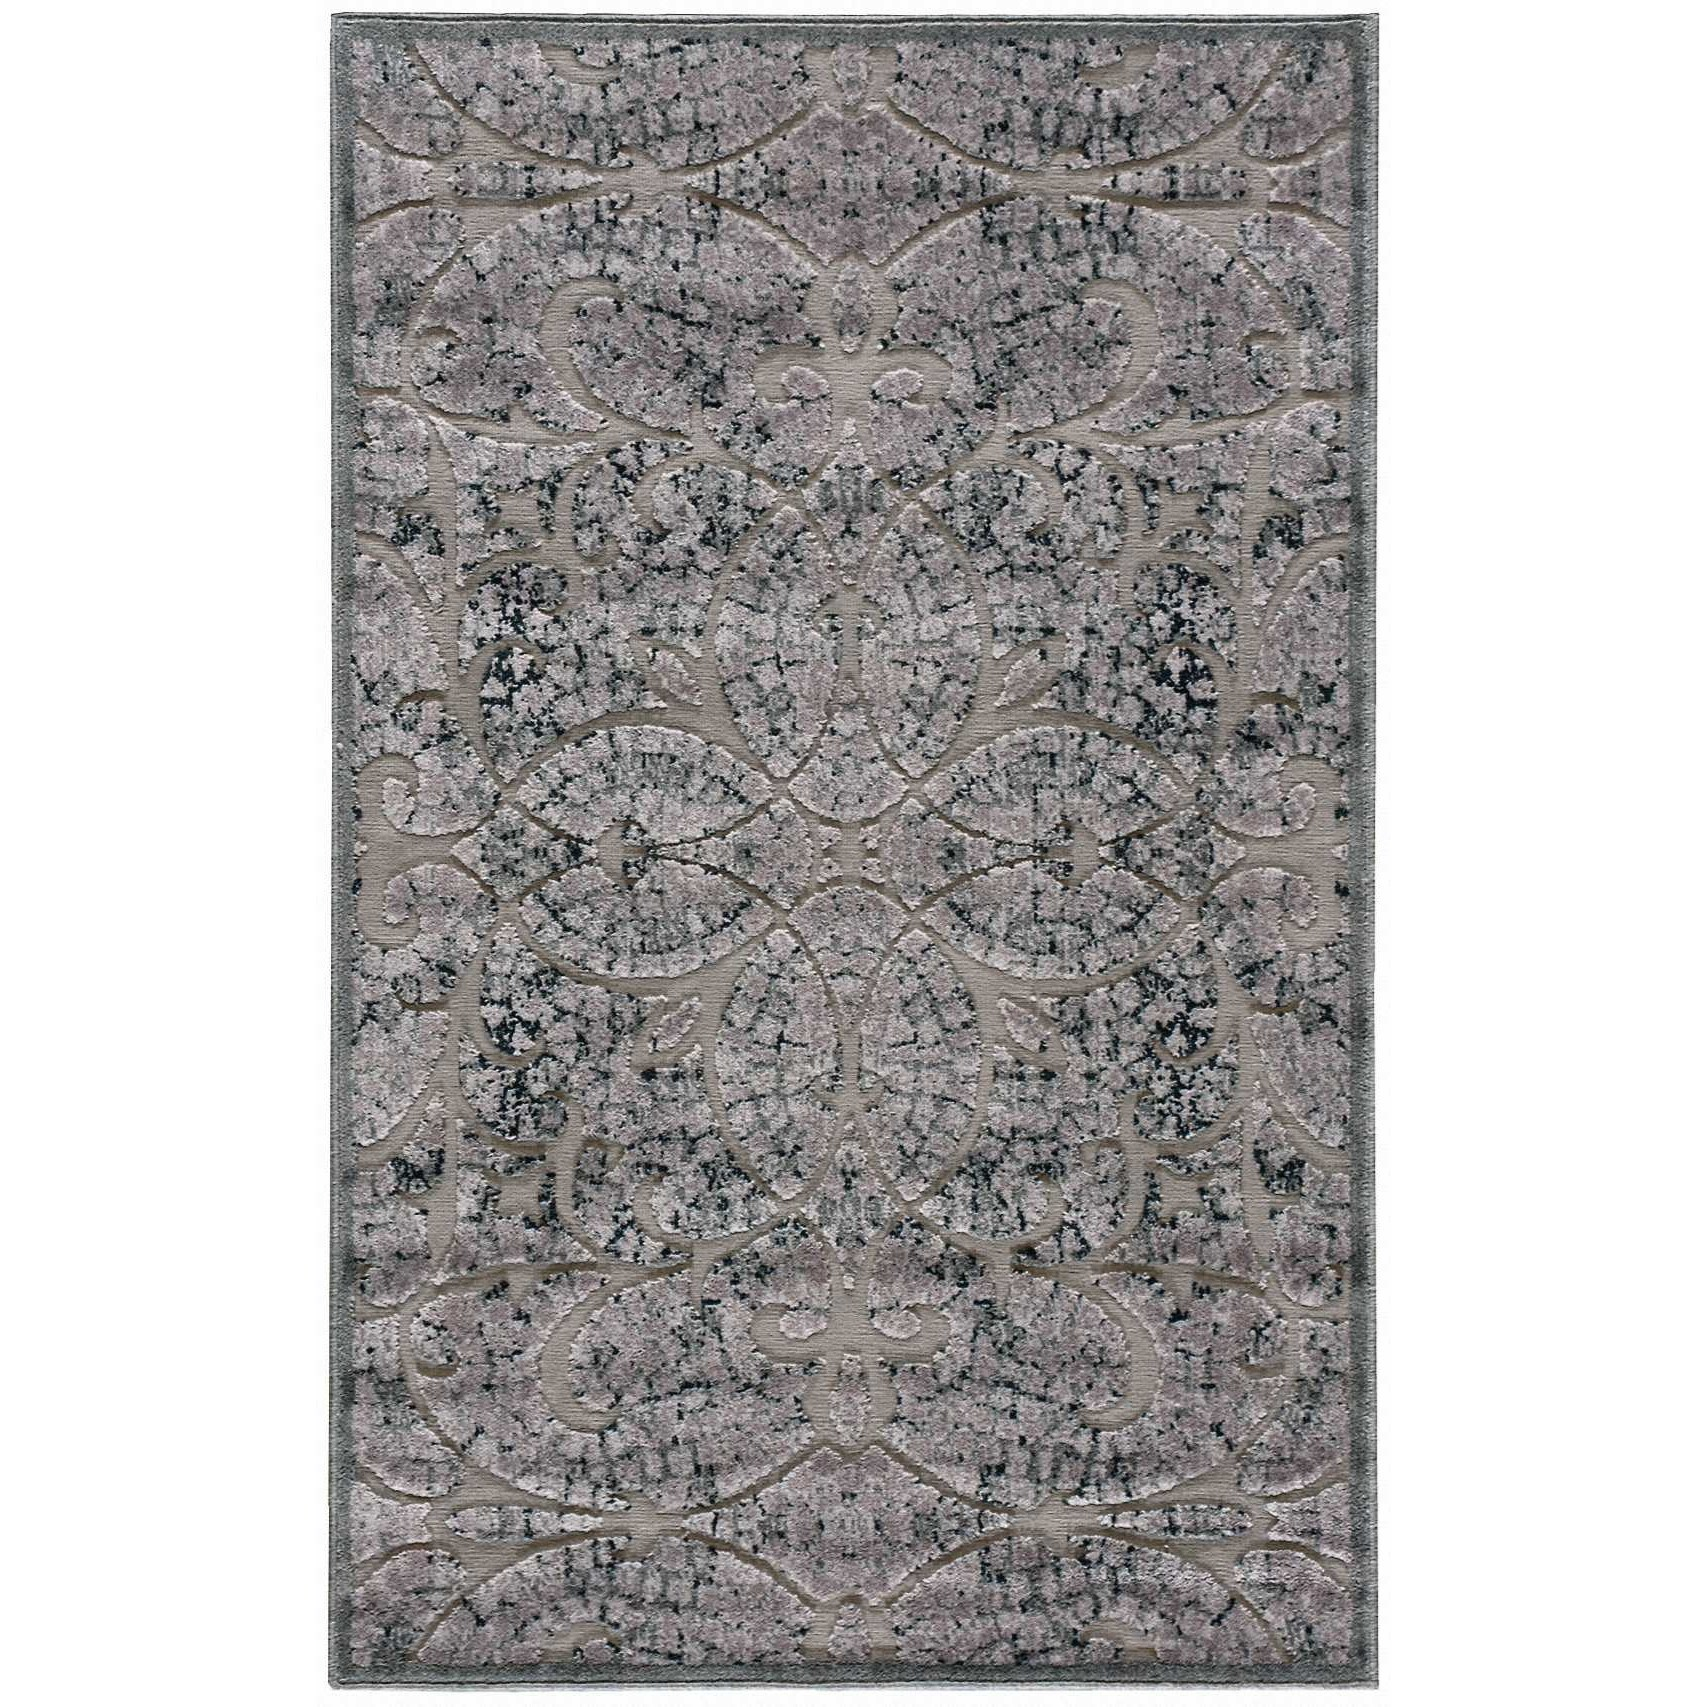 """Nourison Graphic Illusions 3'6"""" x 5'6"""" Grey Rectangle Rug - Item Number: GIL05 GRY 36X56"""